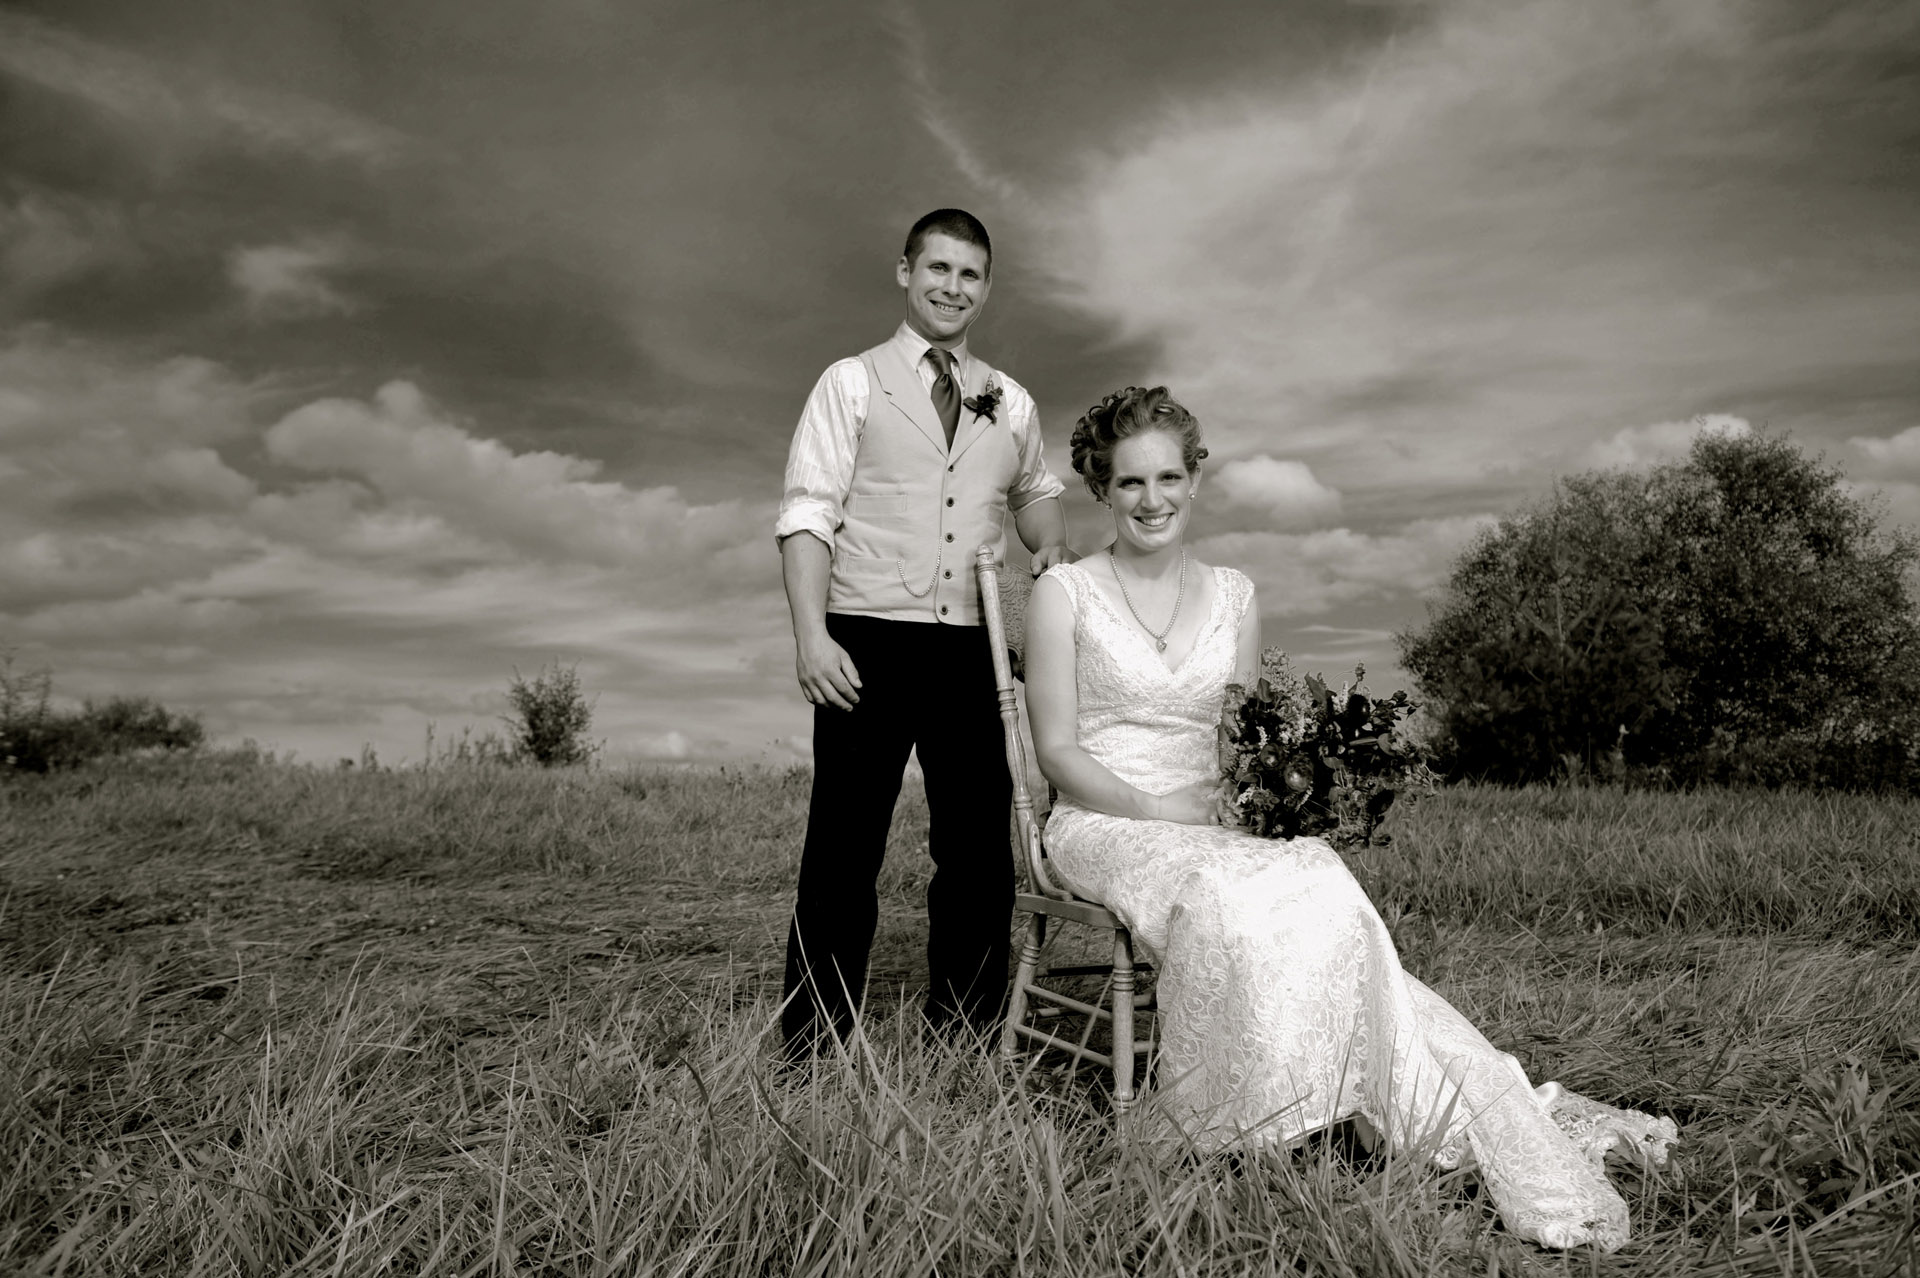 Michigan country wedding wedding photographer's photo of the bride and groom pose for an old fashioned portrait at their Michigan country wedding.